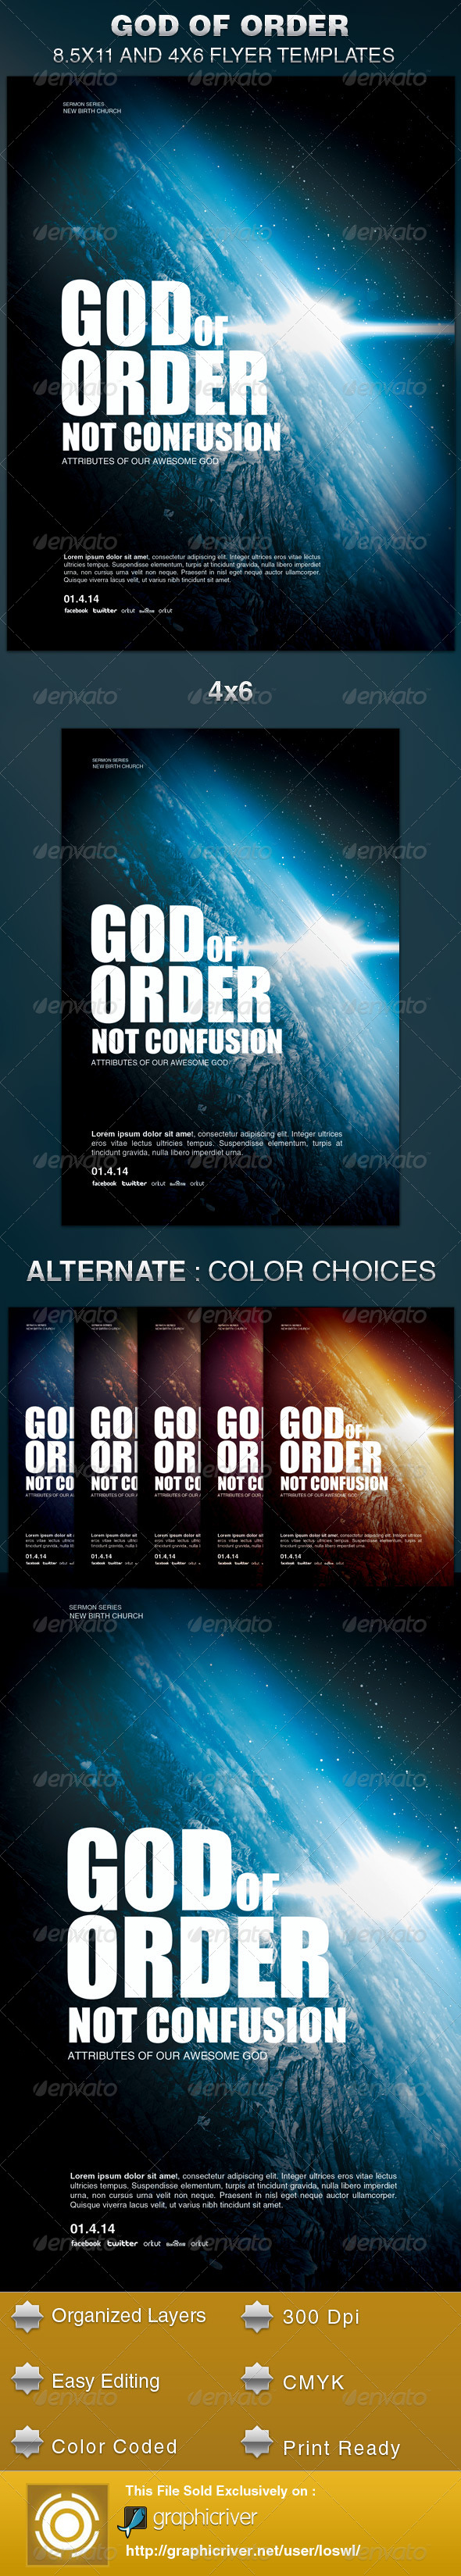 God of Order Church Flyer Template - Church Flyers